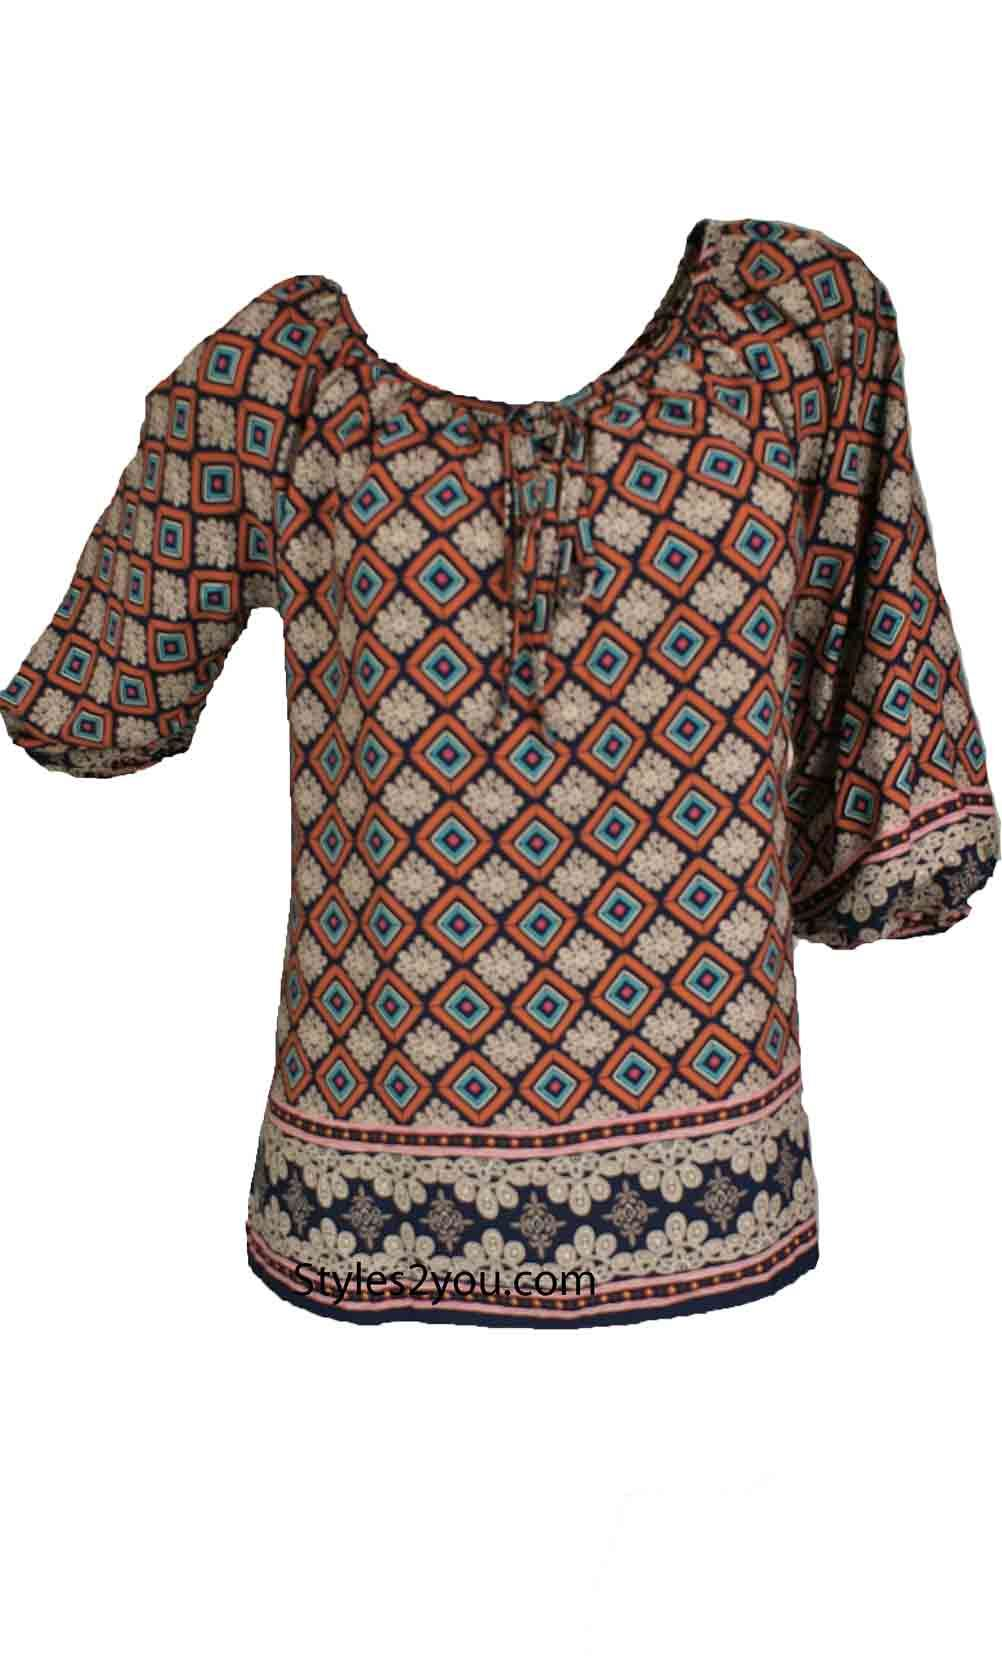 Jewels Bohemien Peasant Top #Vintage, #victorian, #unique, #lace, #boutique, #vintageinspired, #styles2you #love #collection #ideas #inspiration #holiday #ootd #women #fashionista #ootd #gifts #fall #collection #holiday #season #party #affordablefashion #crochet #shoponline #unique #festival #festive #celebrations #gifts #thanksgiving #christmas #hiddengemsofstyles2you